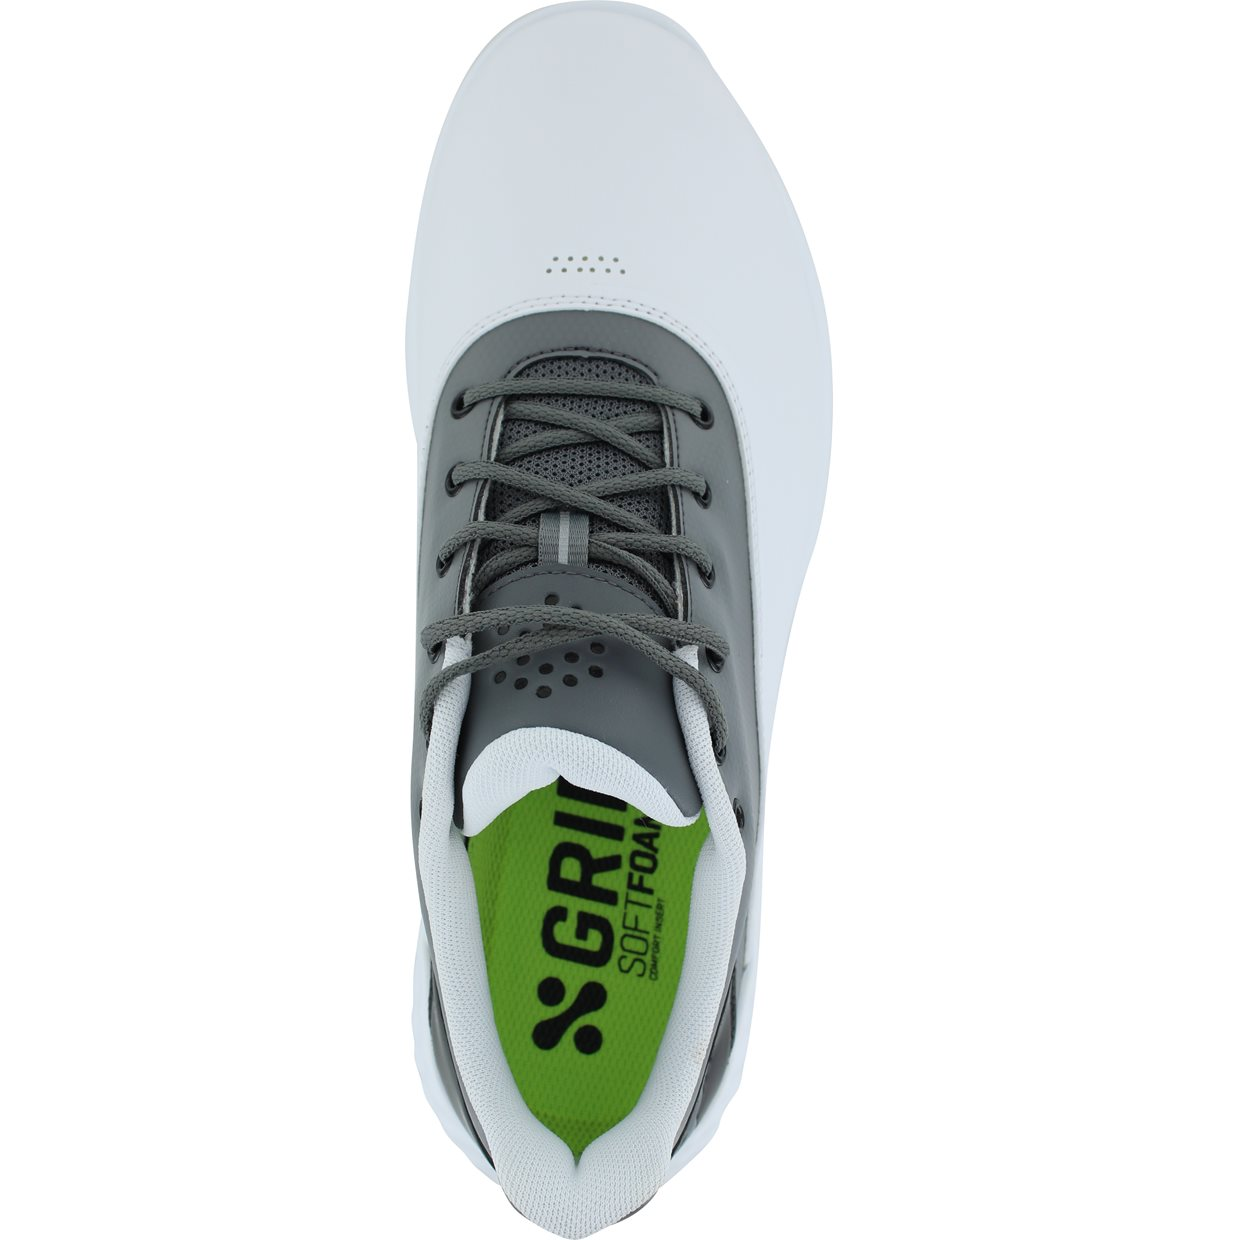 00fa47579cc Puma Grip Fusion Spikeless Shoes at GlobalGolf.com